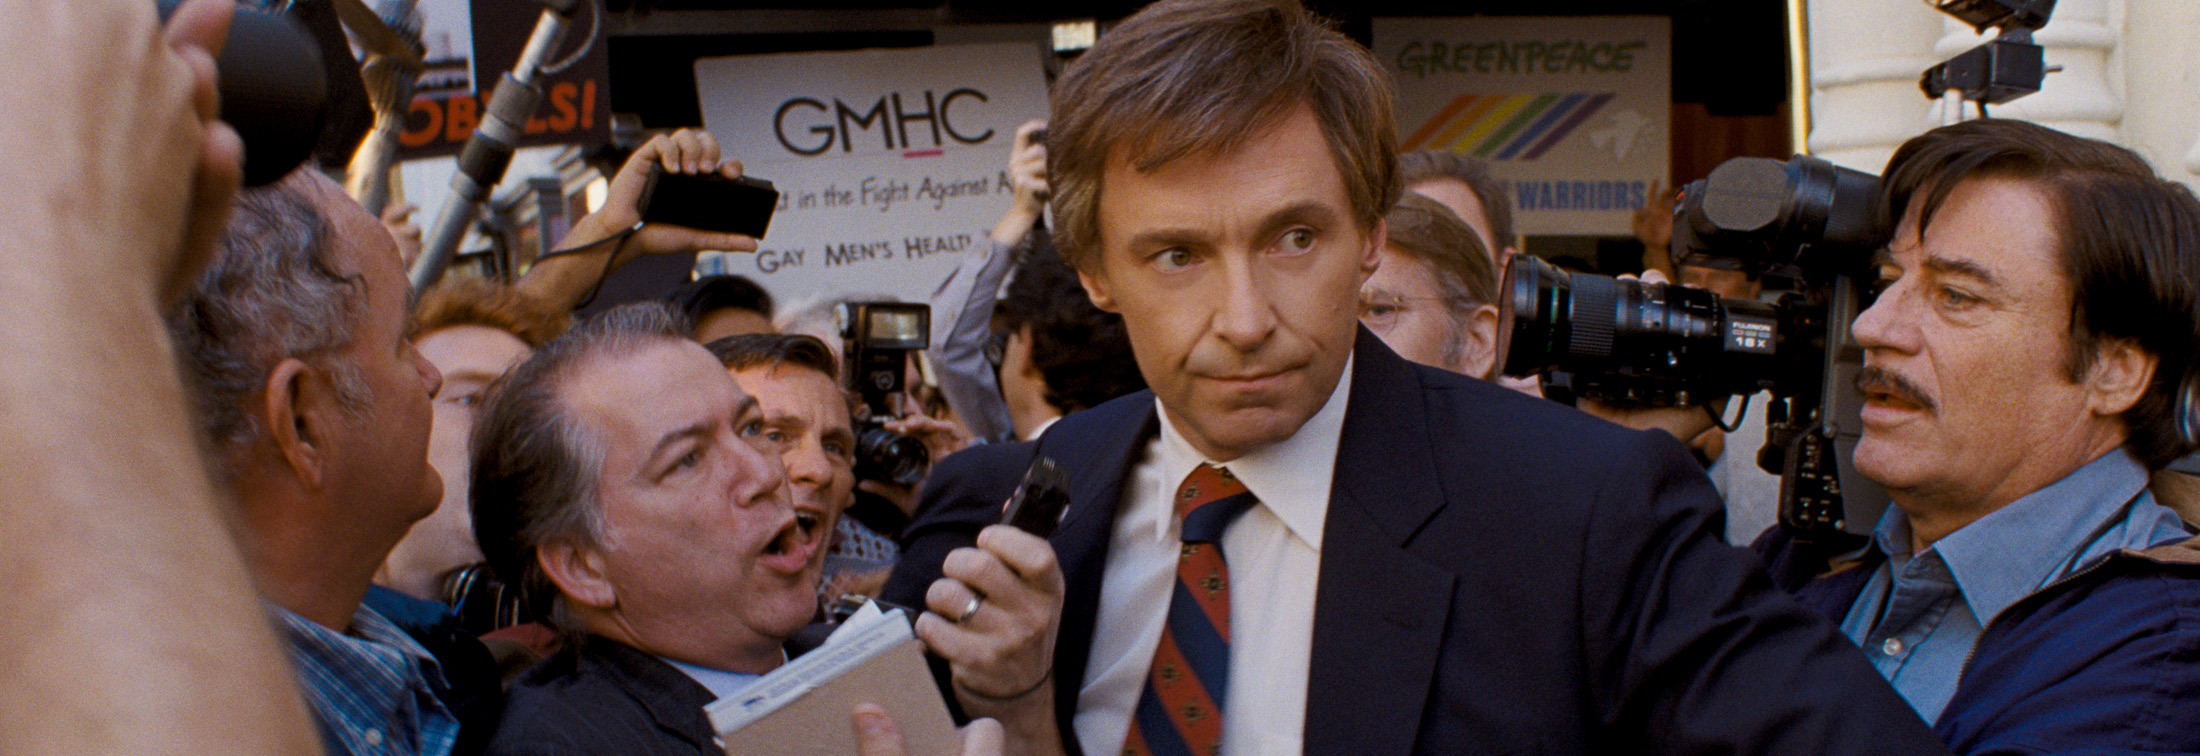 The Front Runner - A tone-deaf look at what could have been